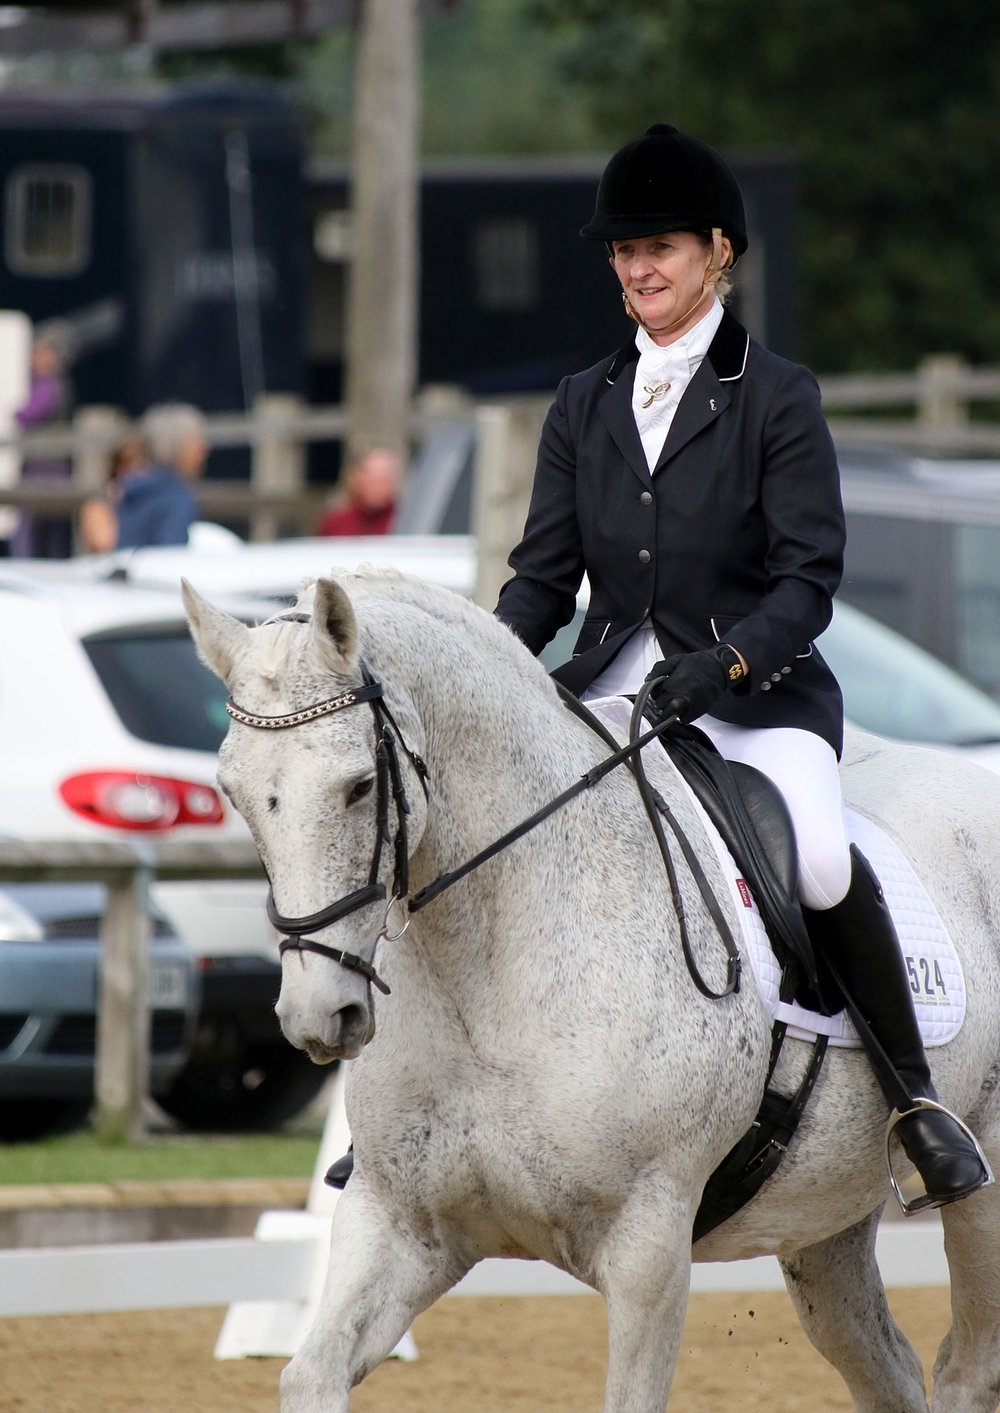 Wendy and Crystal quickly discovered their love of dressage together   pic credit: Emmpix